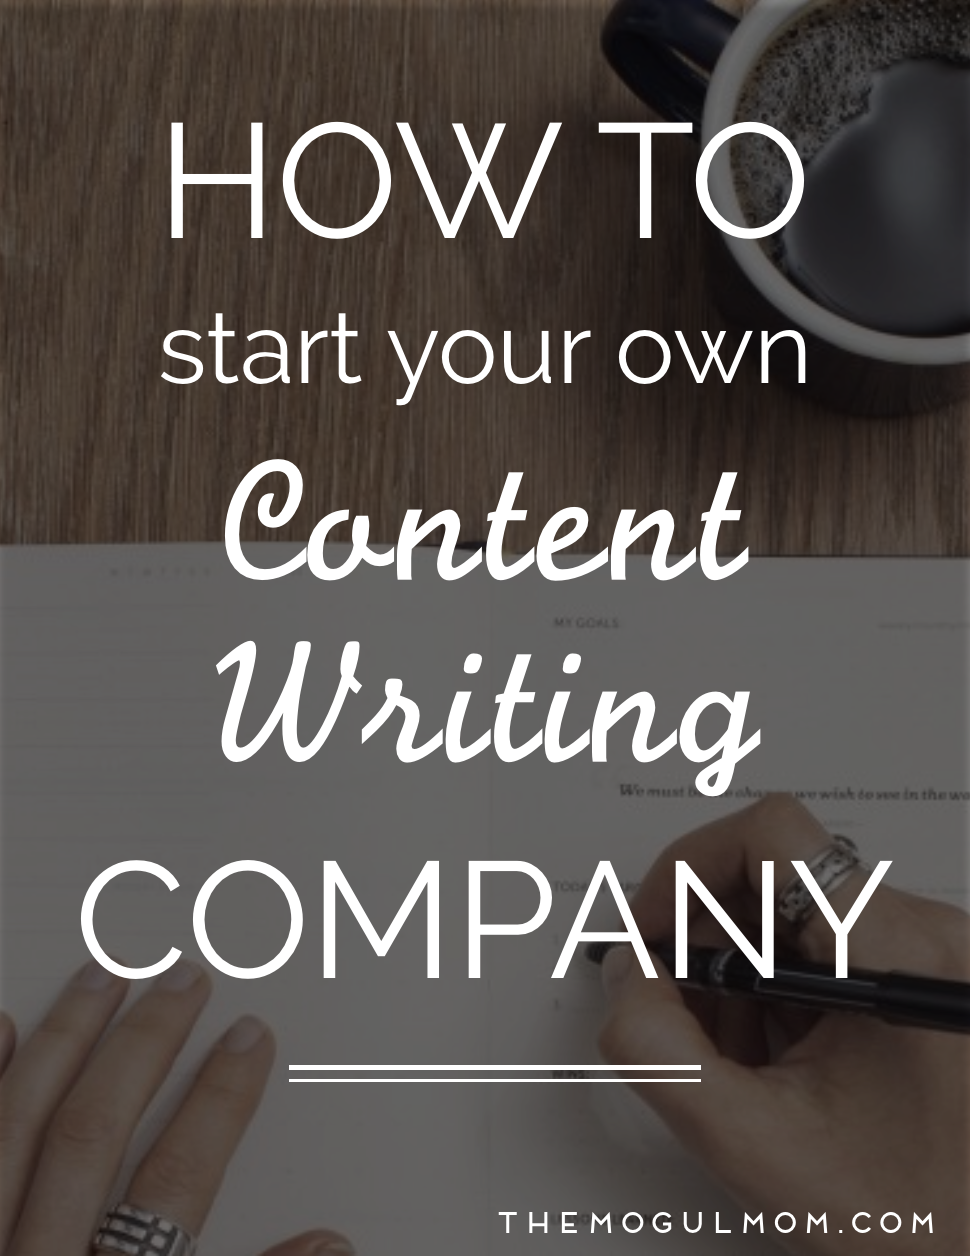 How to Start Your Own Content Writing Company: A Step-by-Step Guide